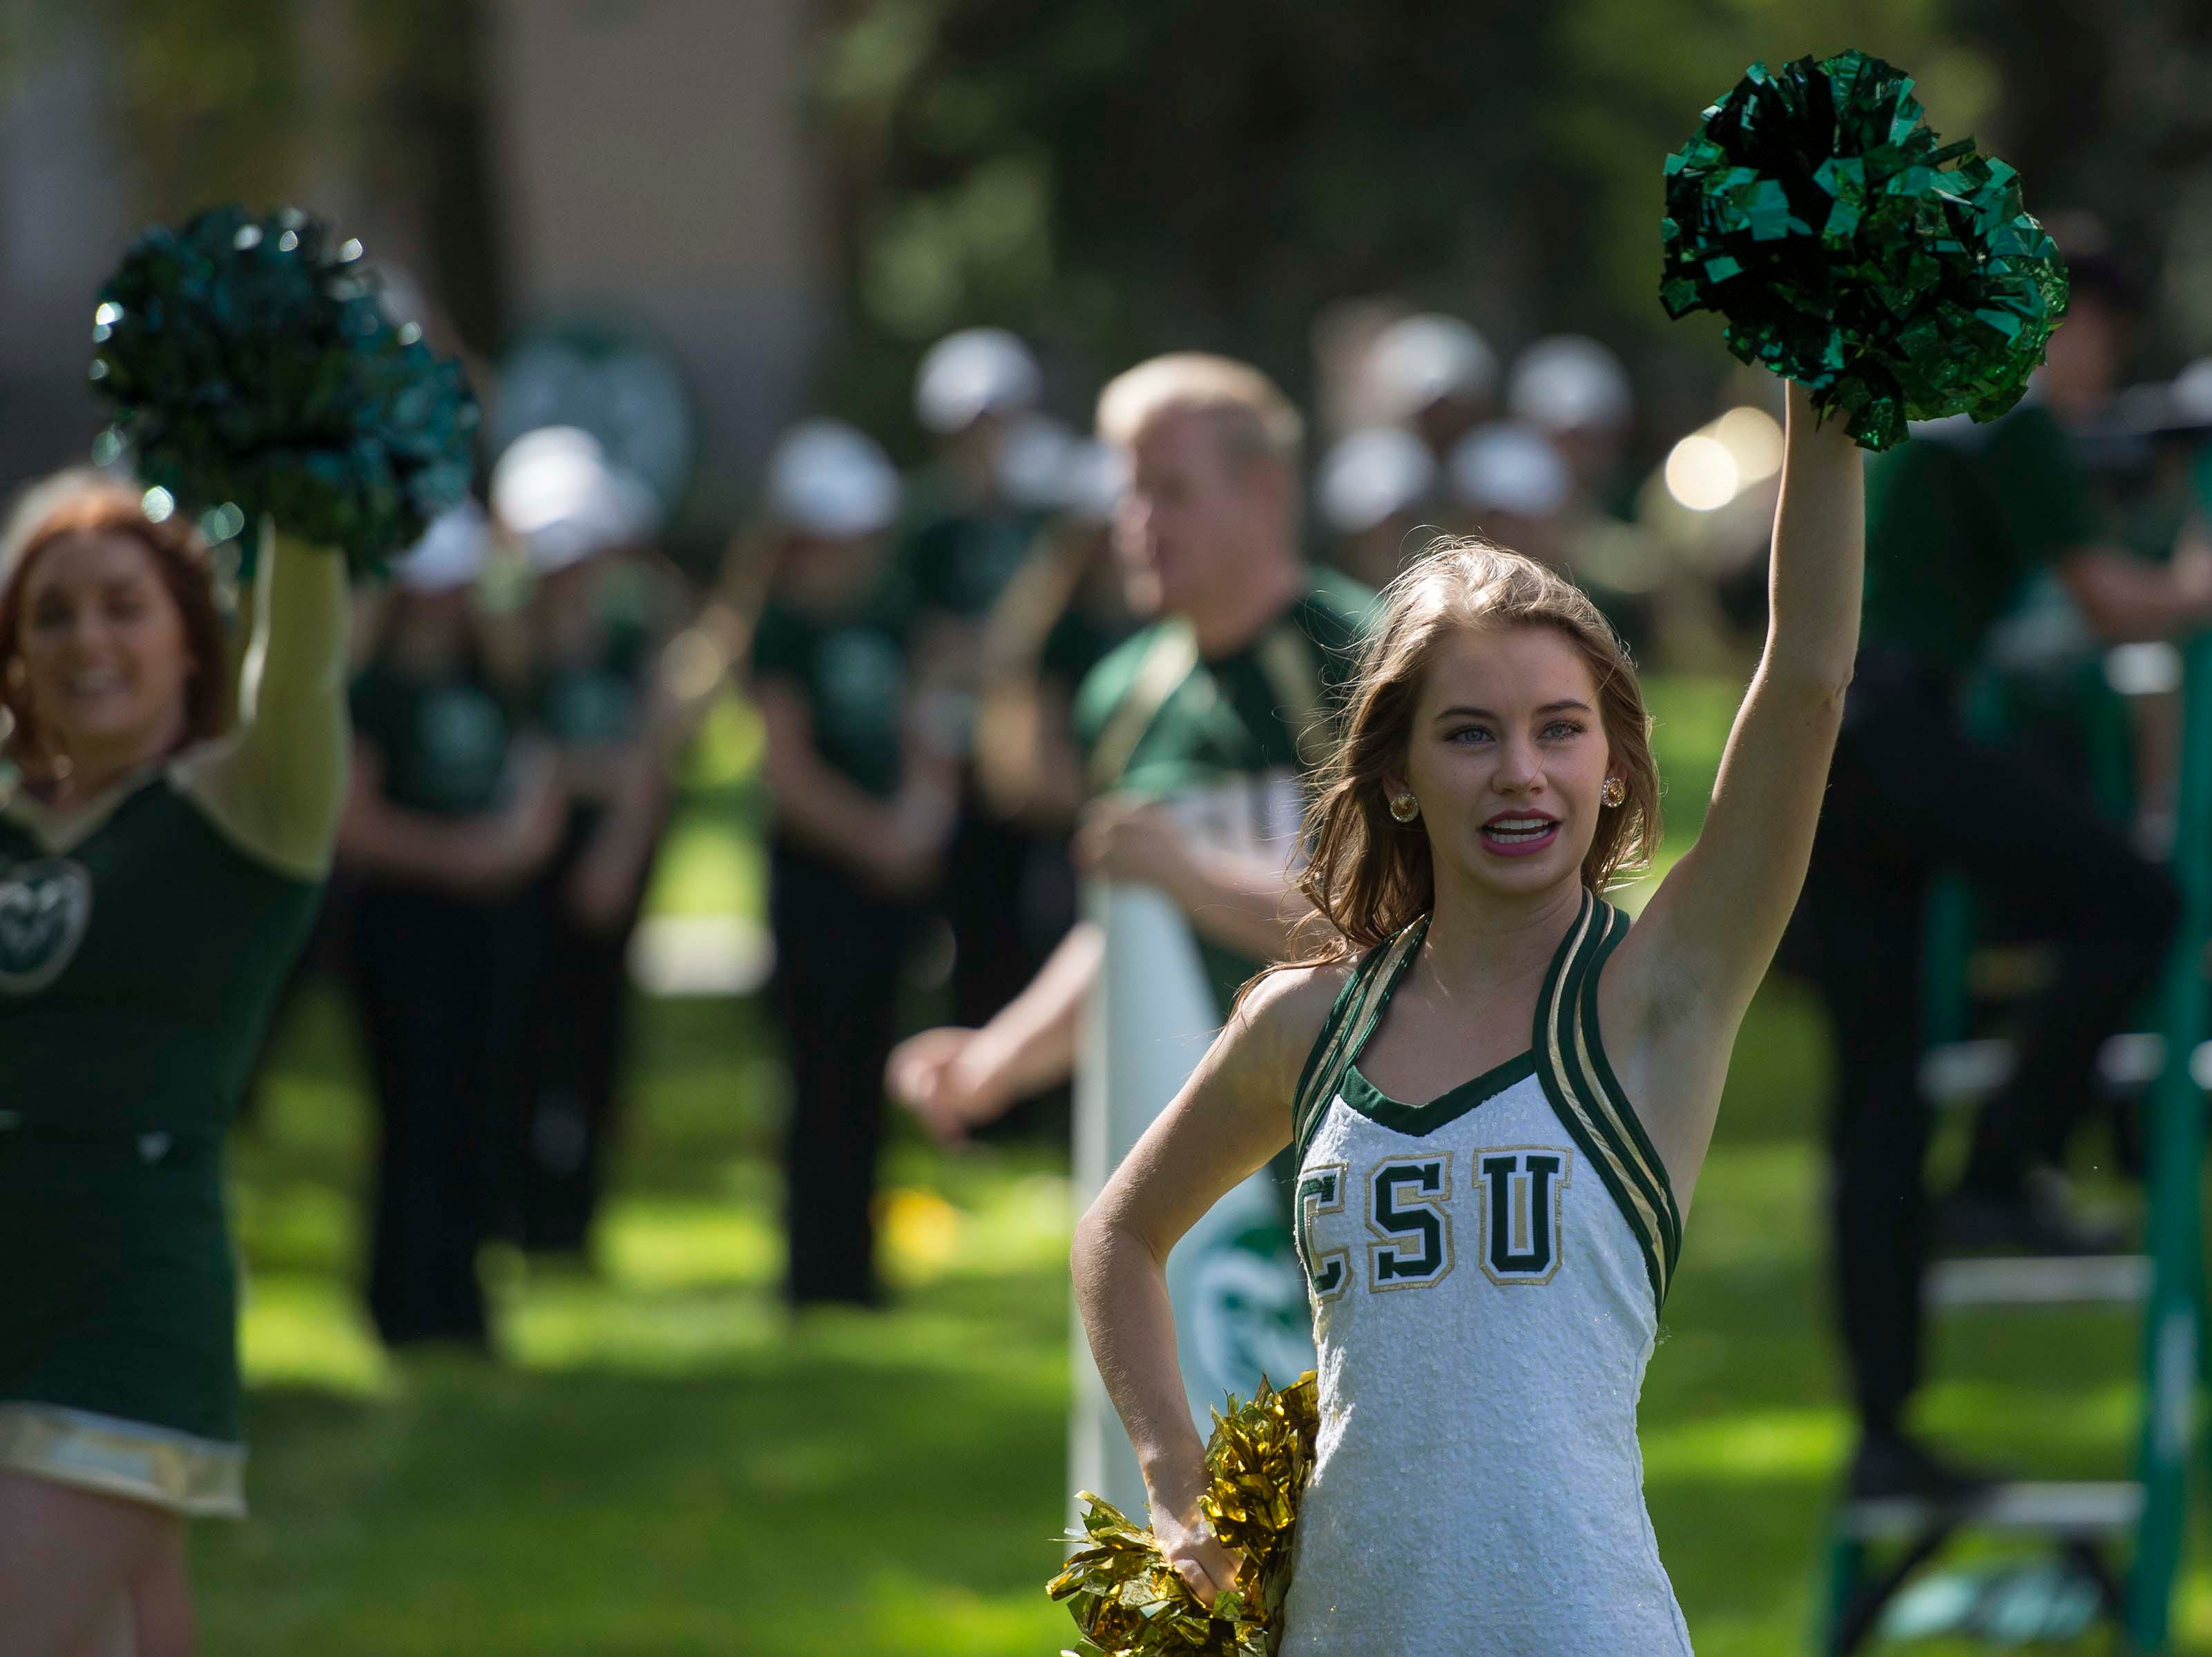 CSU cheerleaders perform at the 2018 fall address on Wednesday, Oct. 3, 2018, at the Colorado State University campus in Fort Collins, Colo.